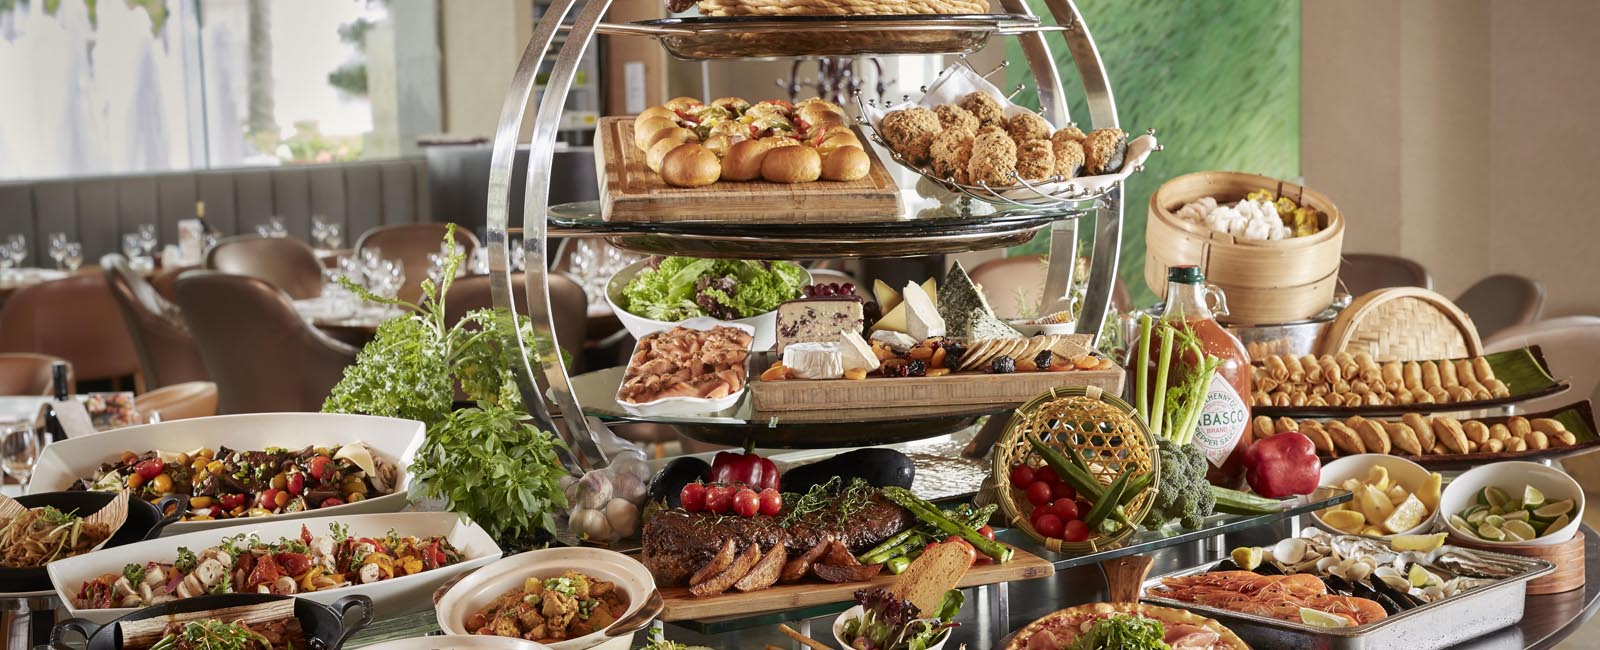 Brunch Buffet Town International Buffet Singapore Restaurants Bars